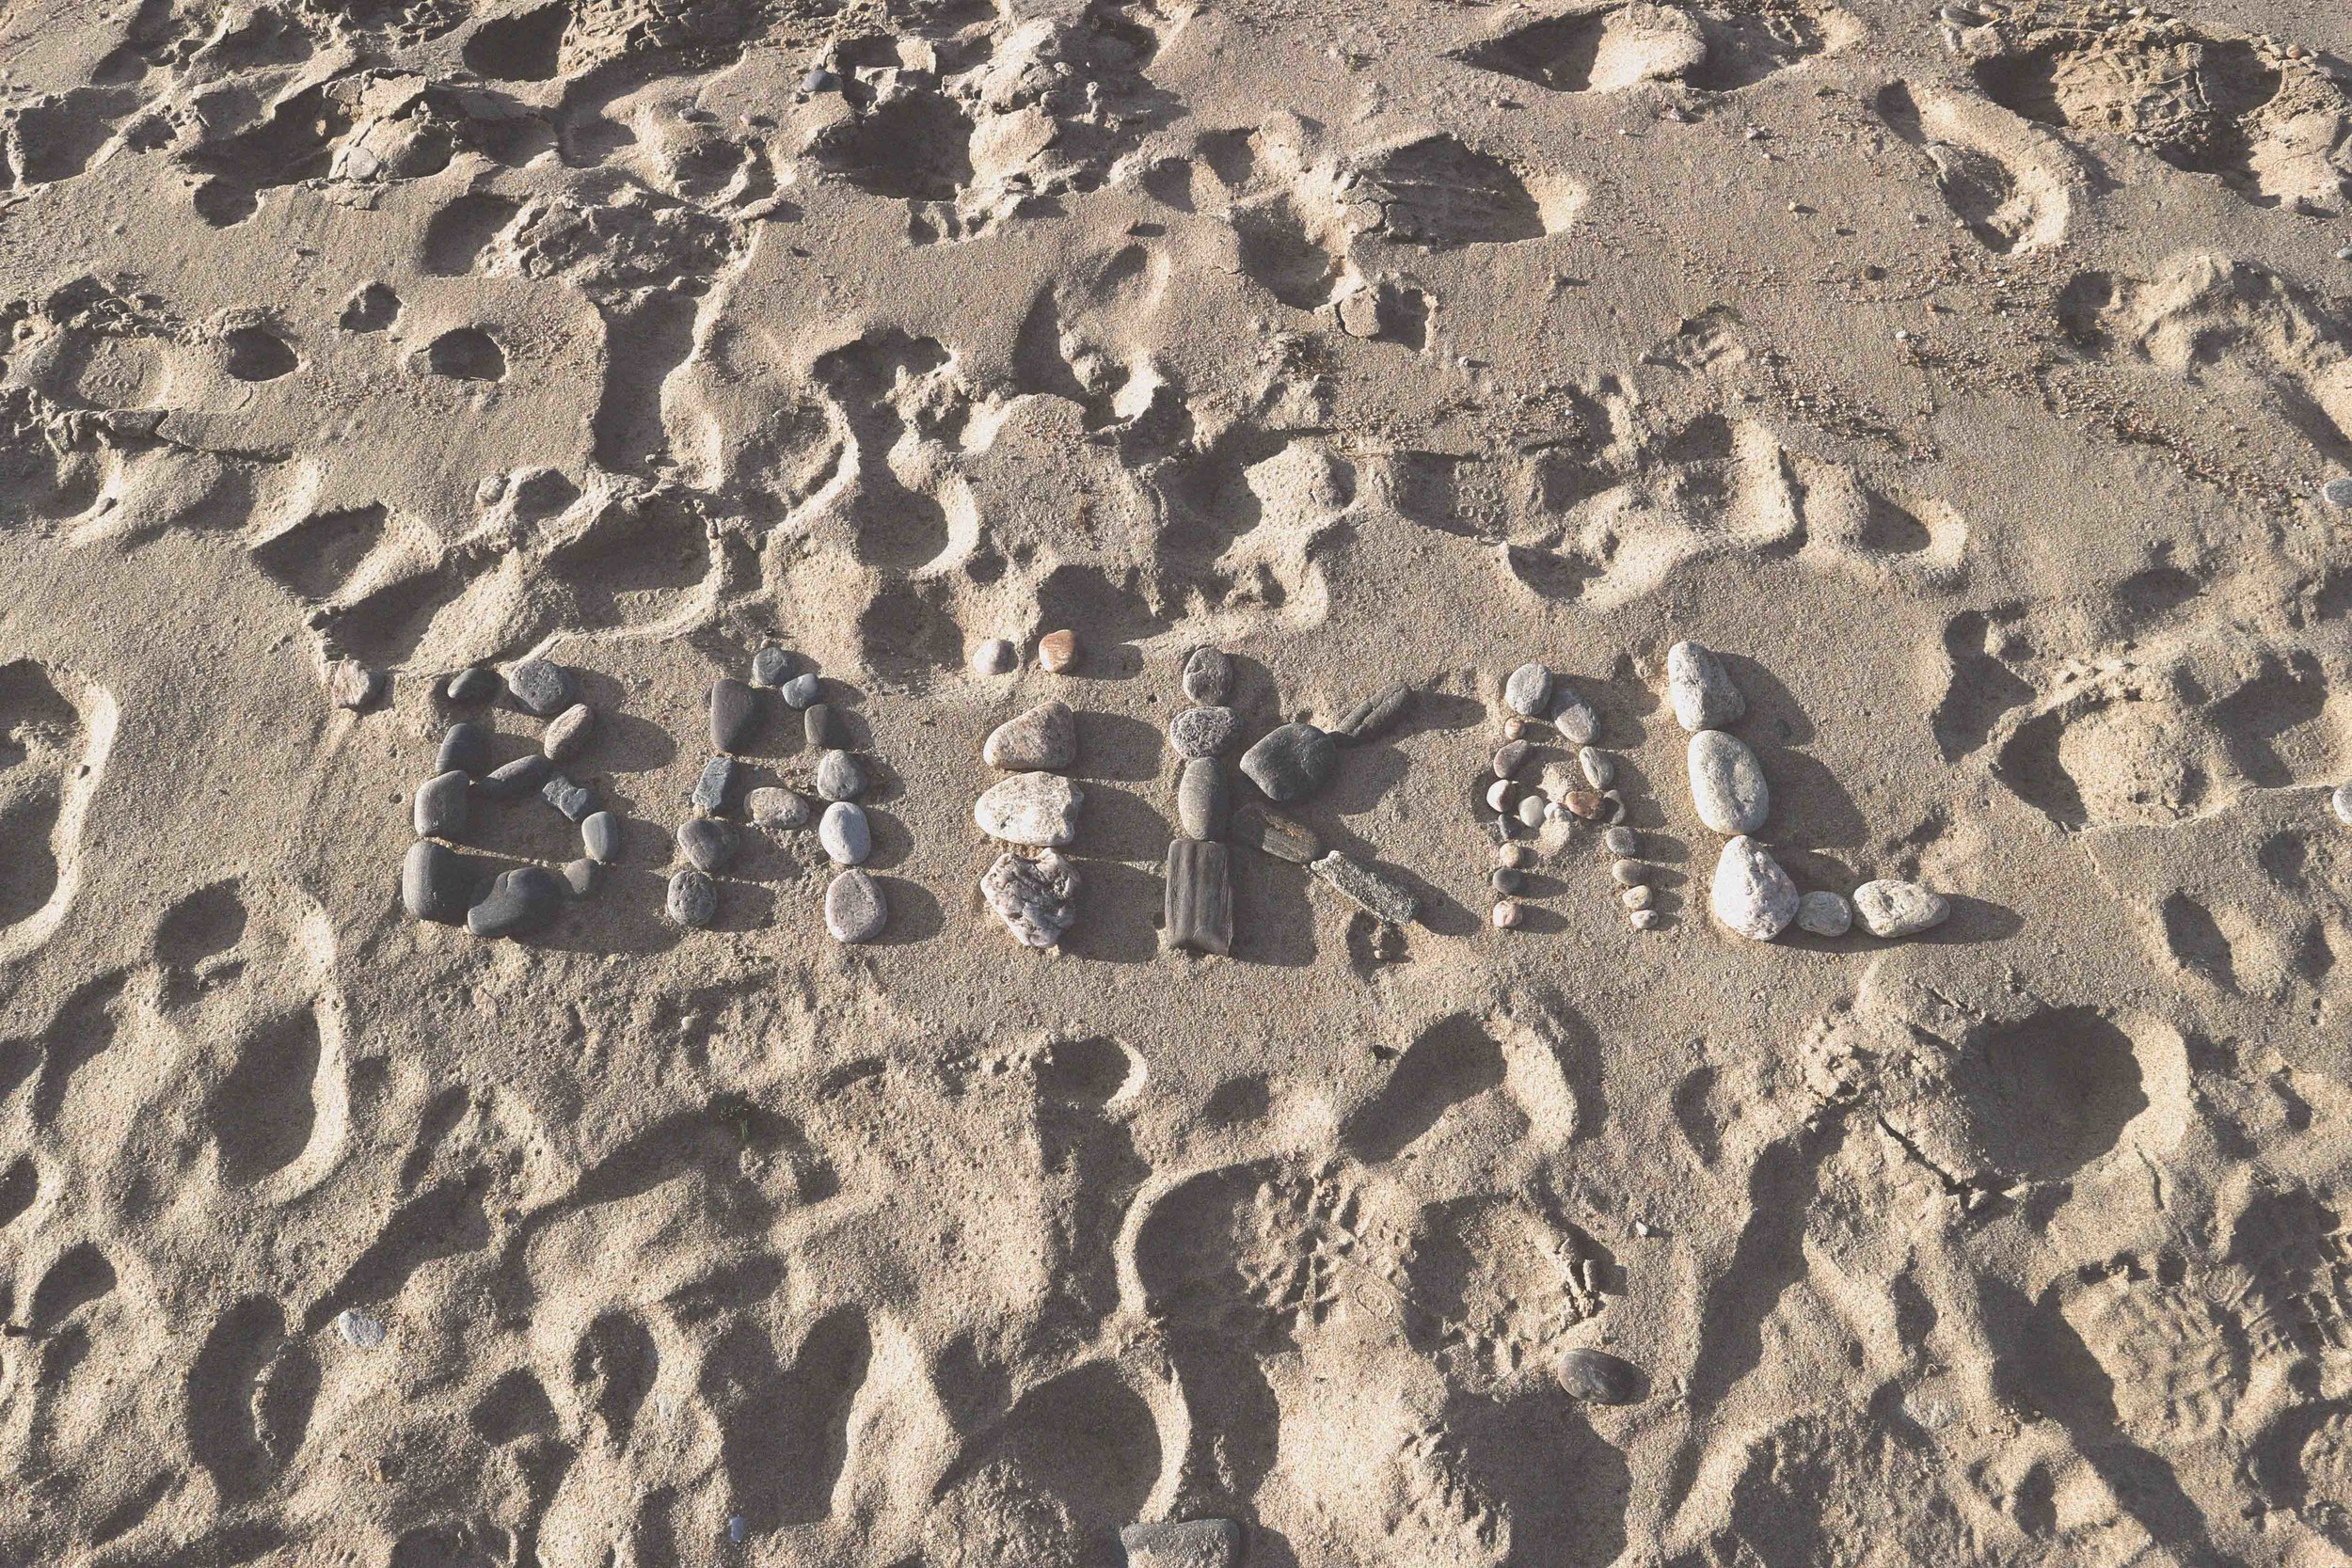 The message on the beach